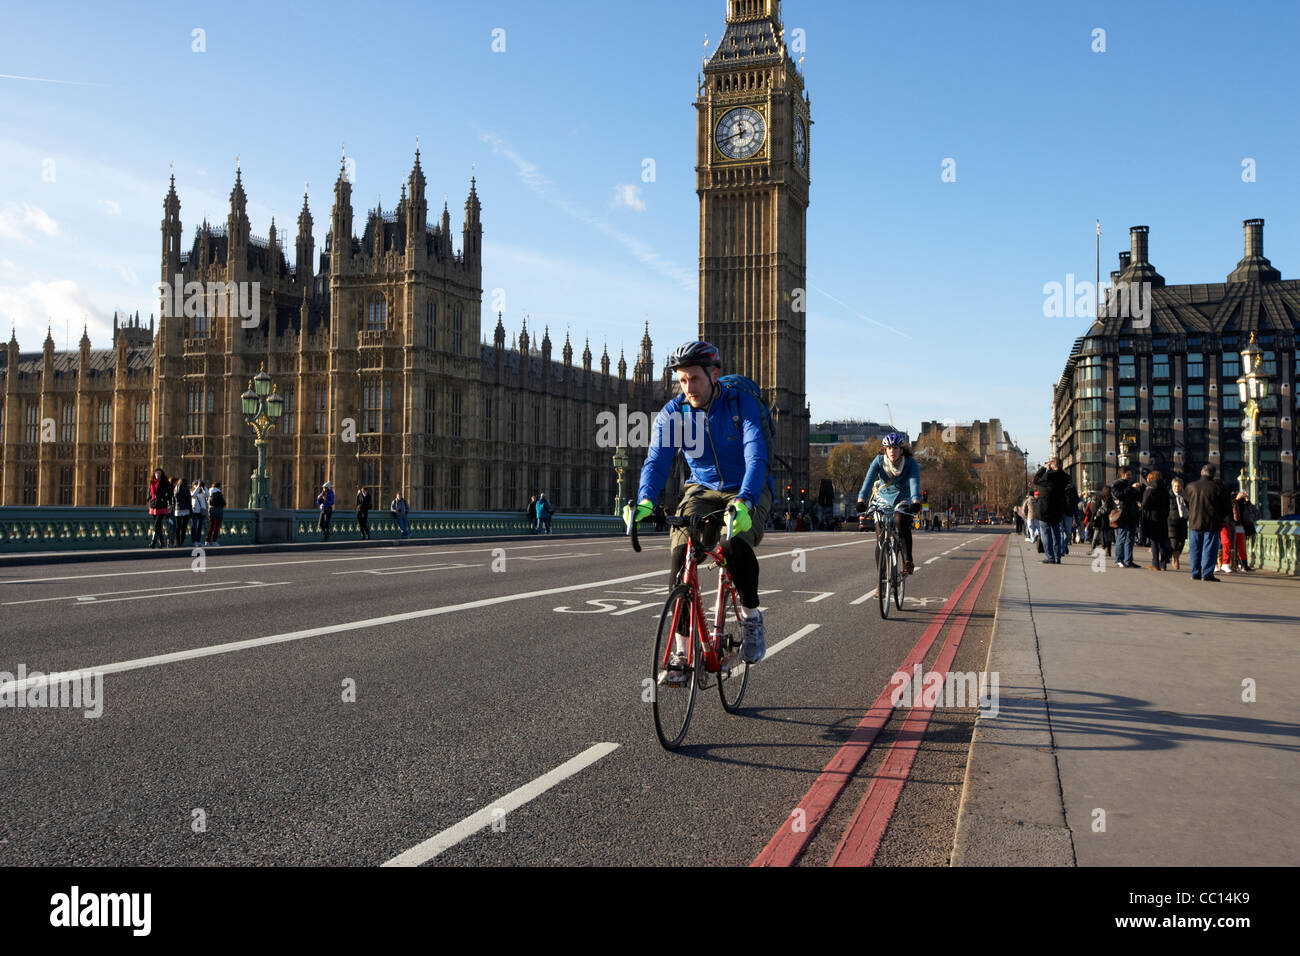 cyclists crossing westminster bridge cycle lane outside the palace of westminster houses of parliament buildings - Stock Image